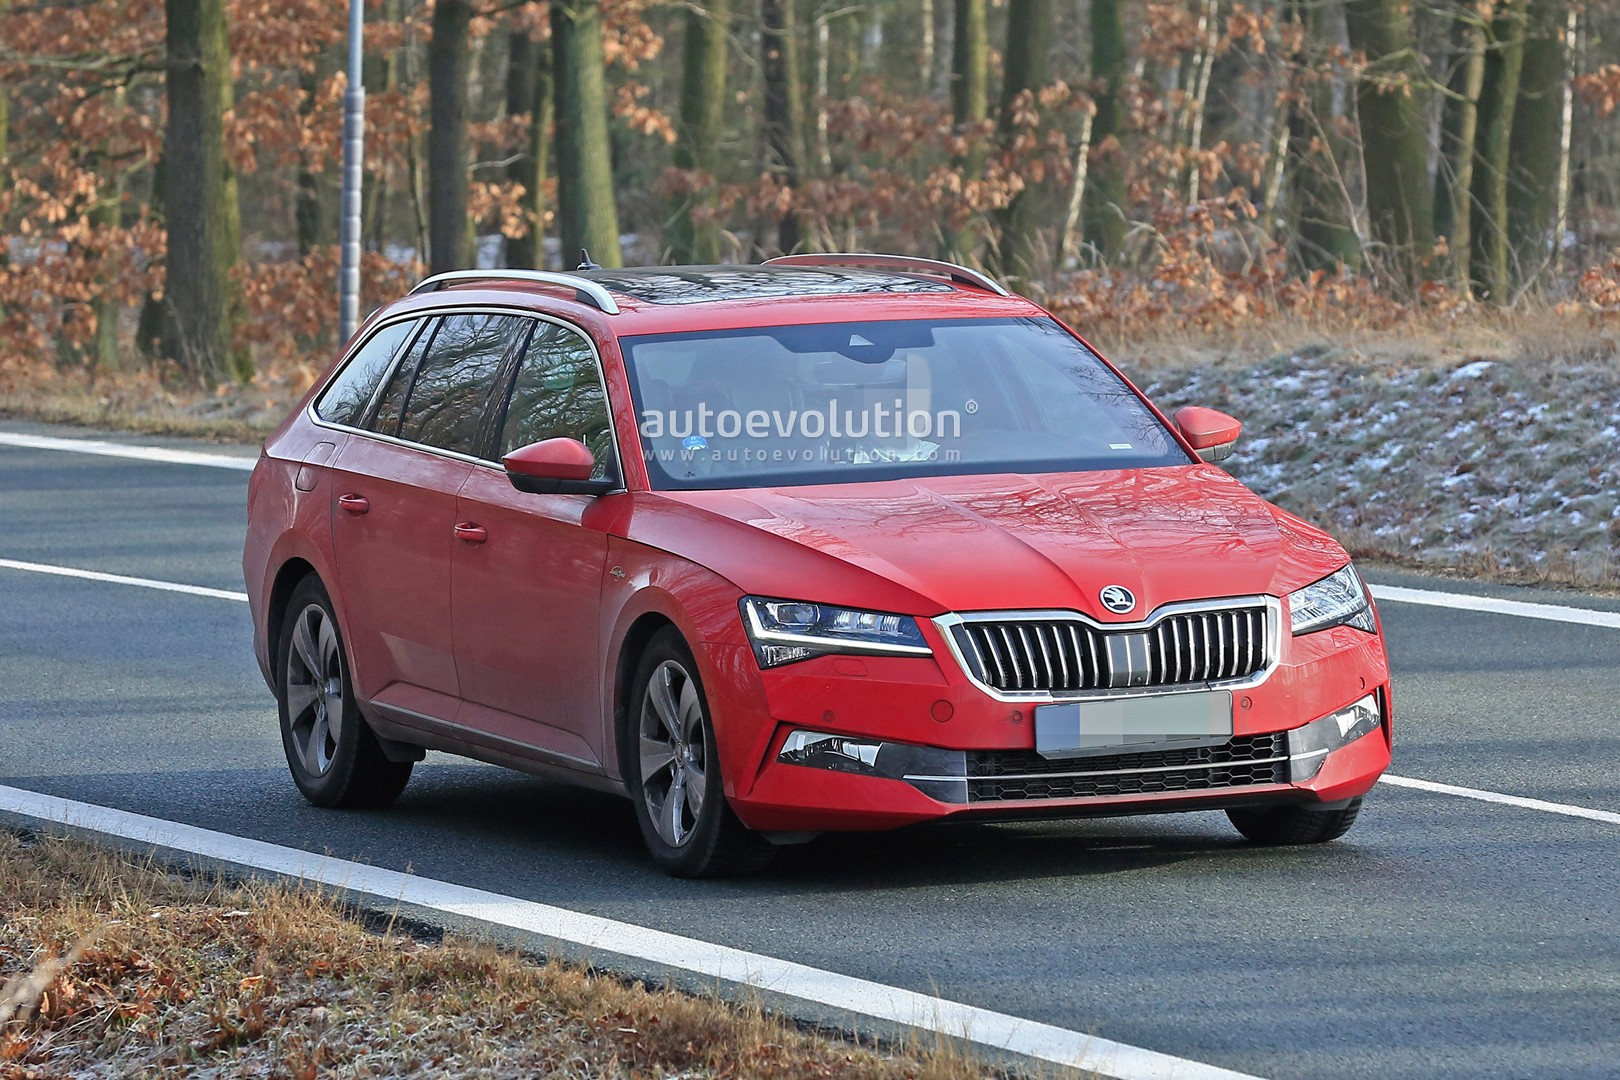 2020 Skoda Superb Facelift Spied Looks Ready To Borrow Passat Tech